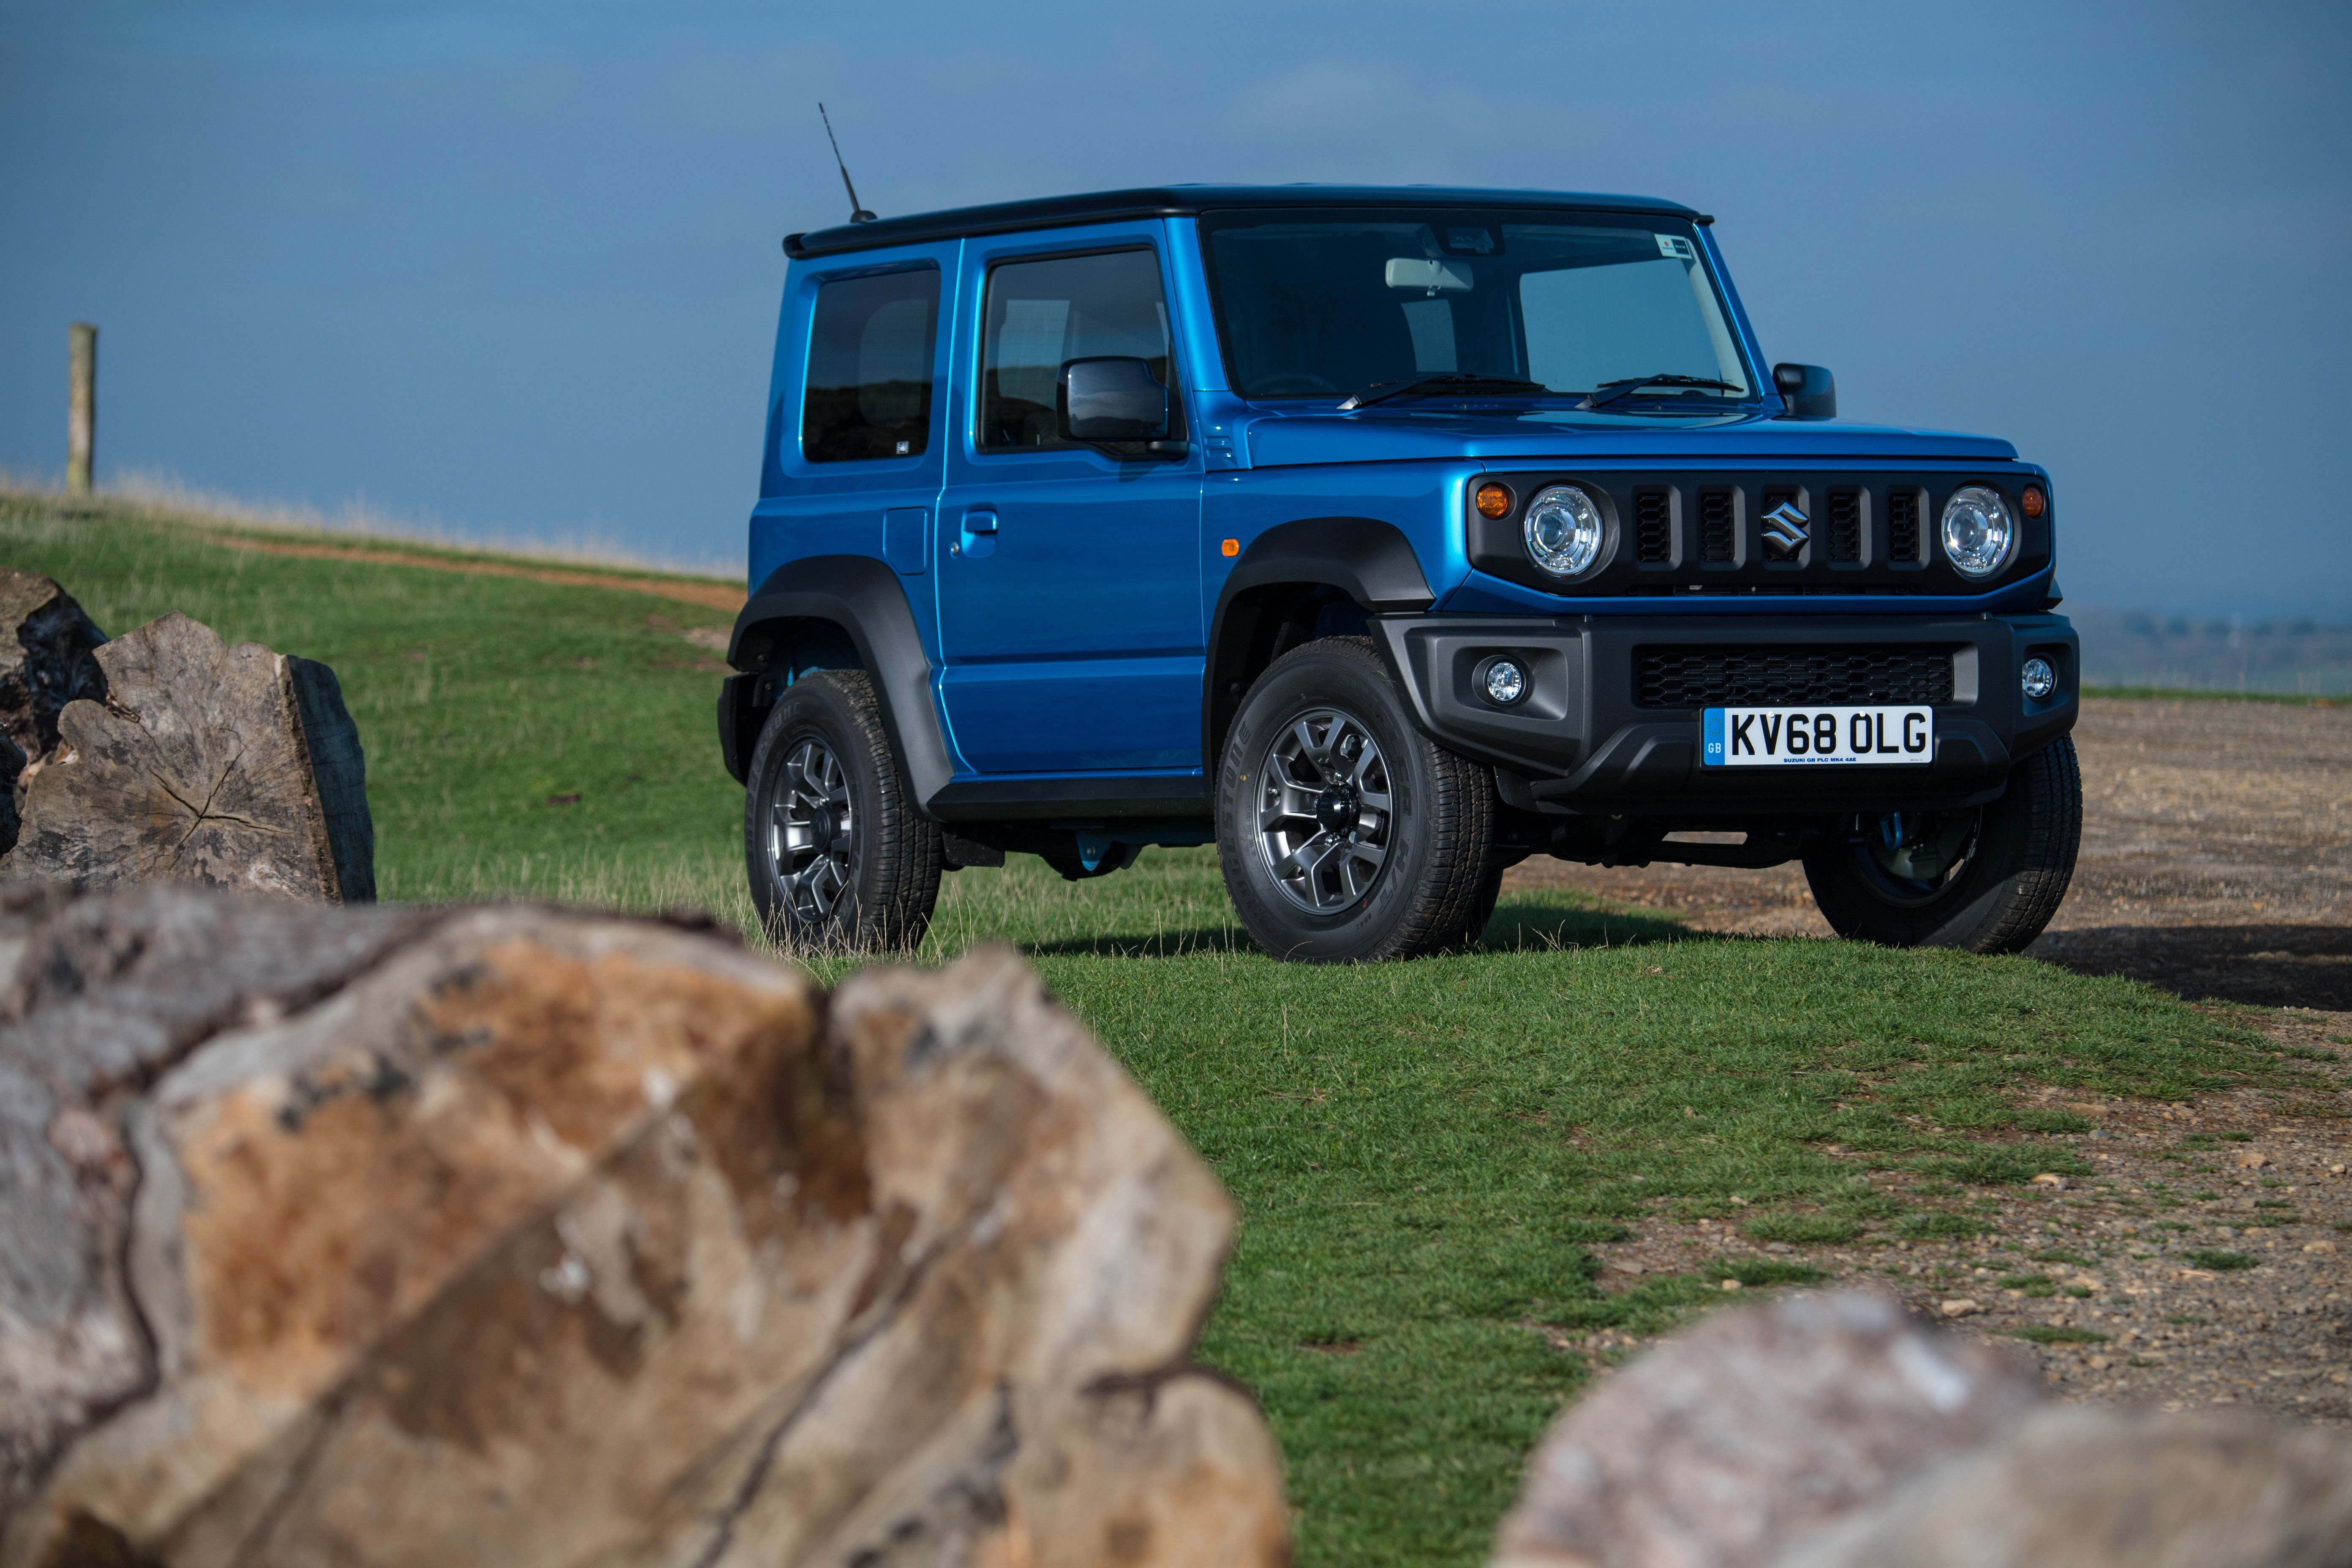 The Suzuki Jimny Is Objectively Terrible but Incredibly Charming